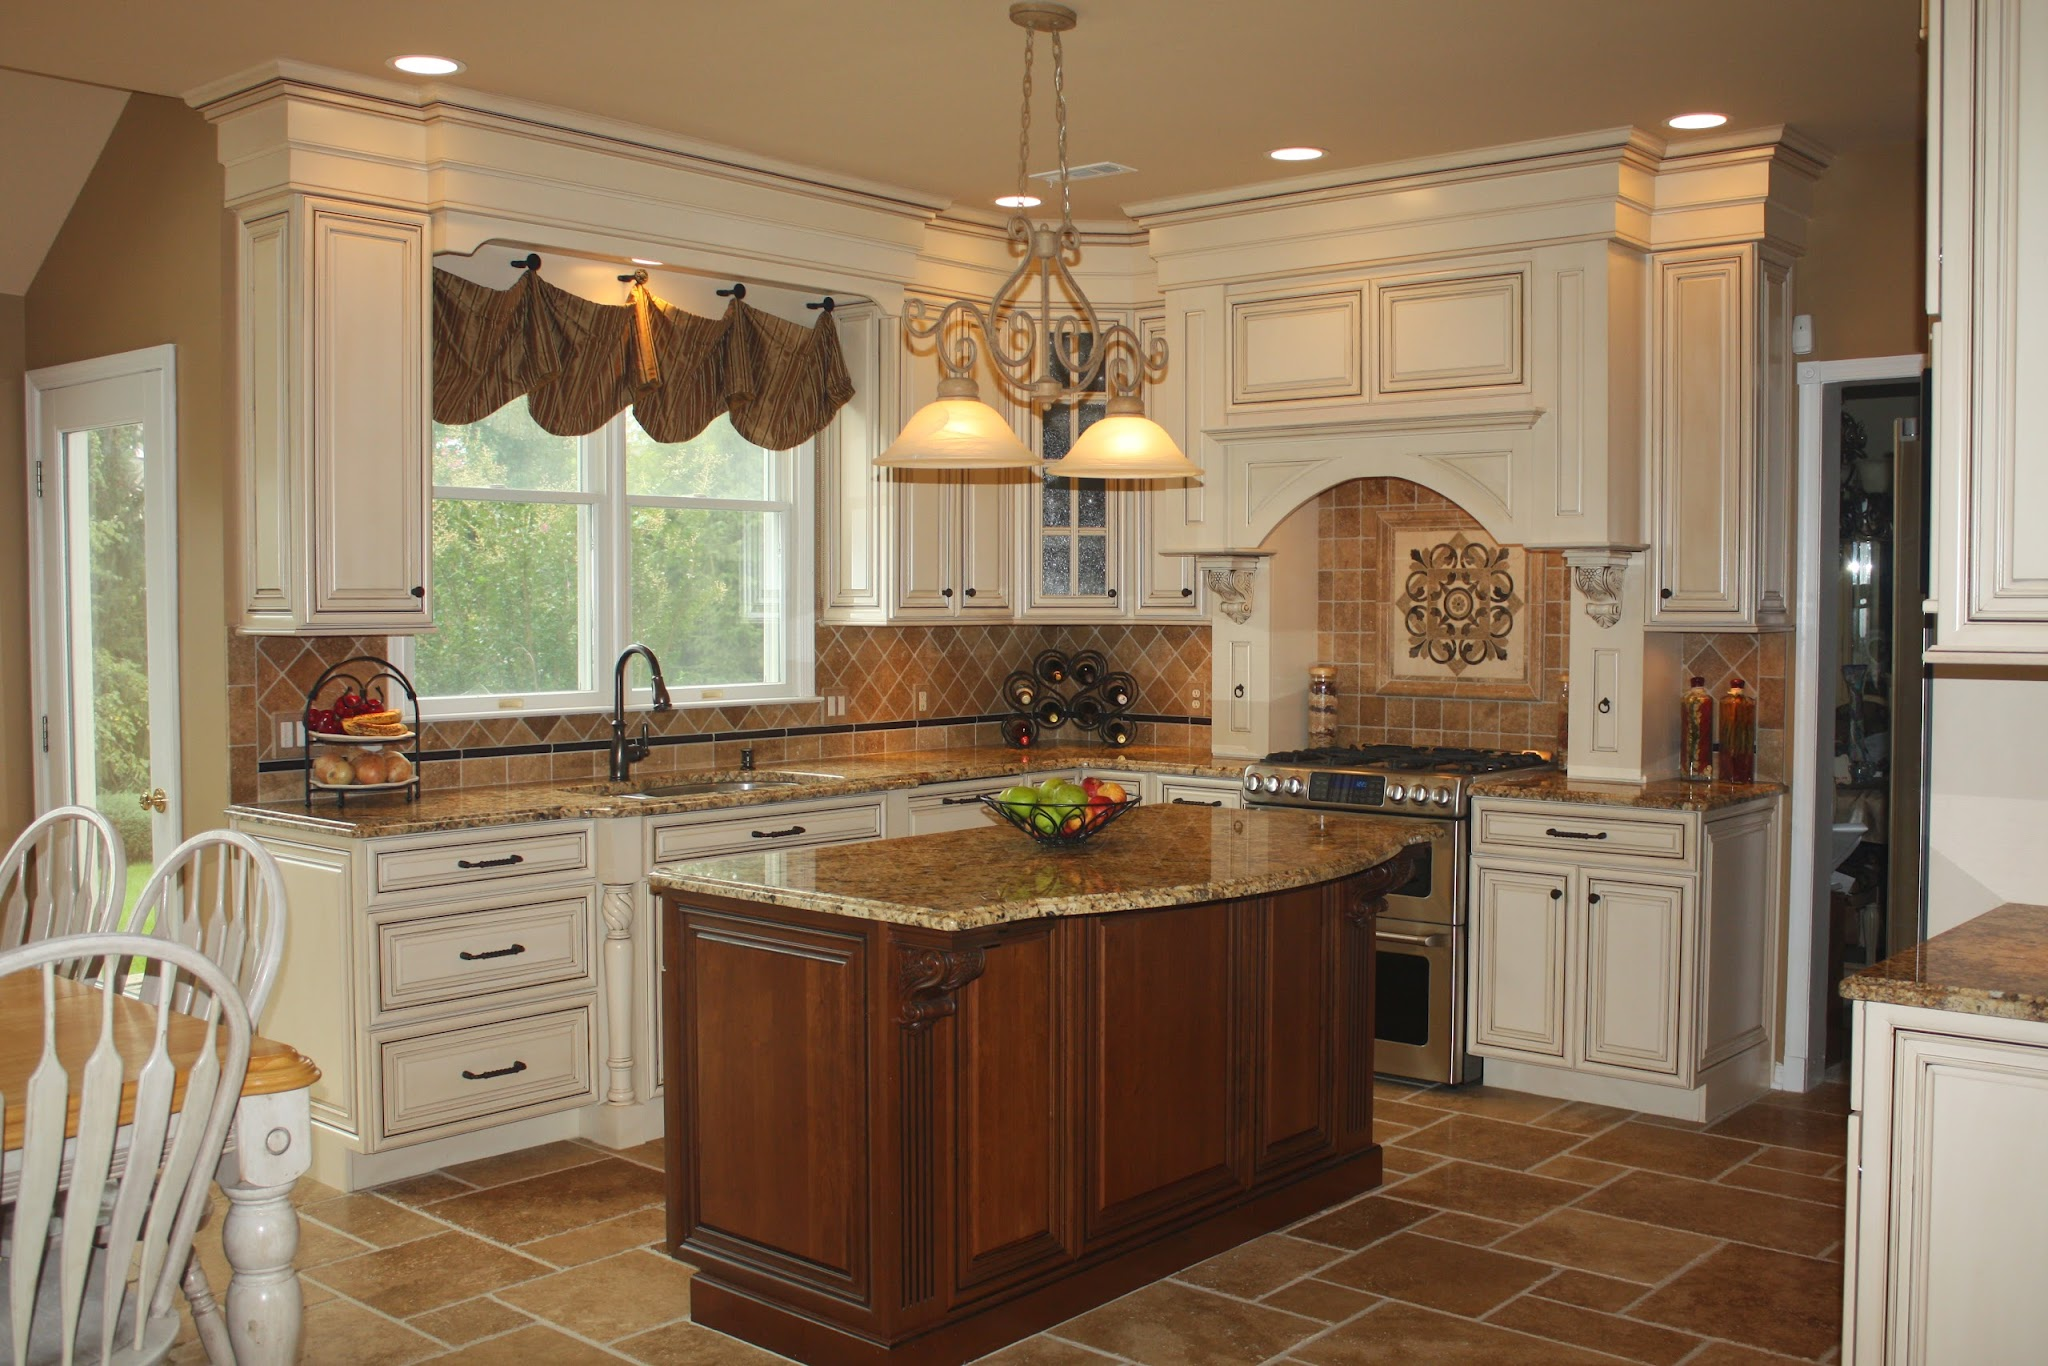 Houzz kitchen dreams house furniture - Kitchen pictures ideas ...